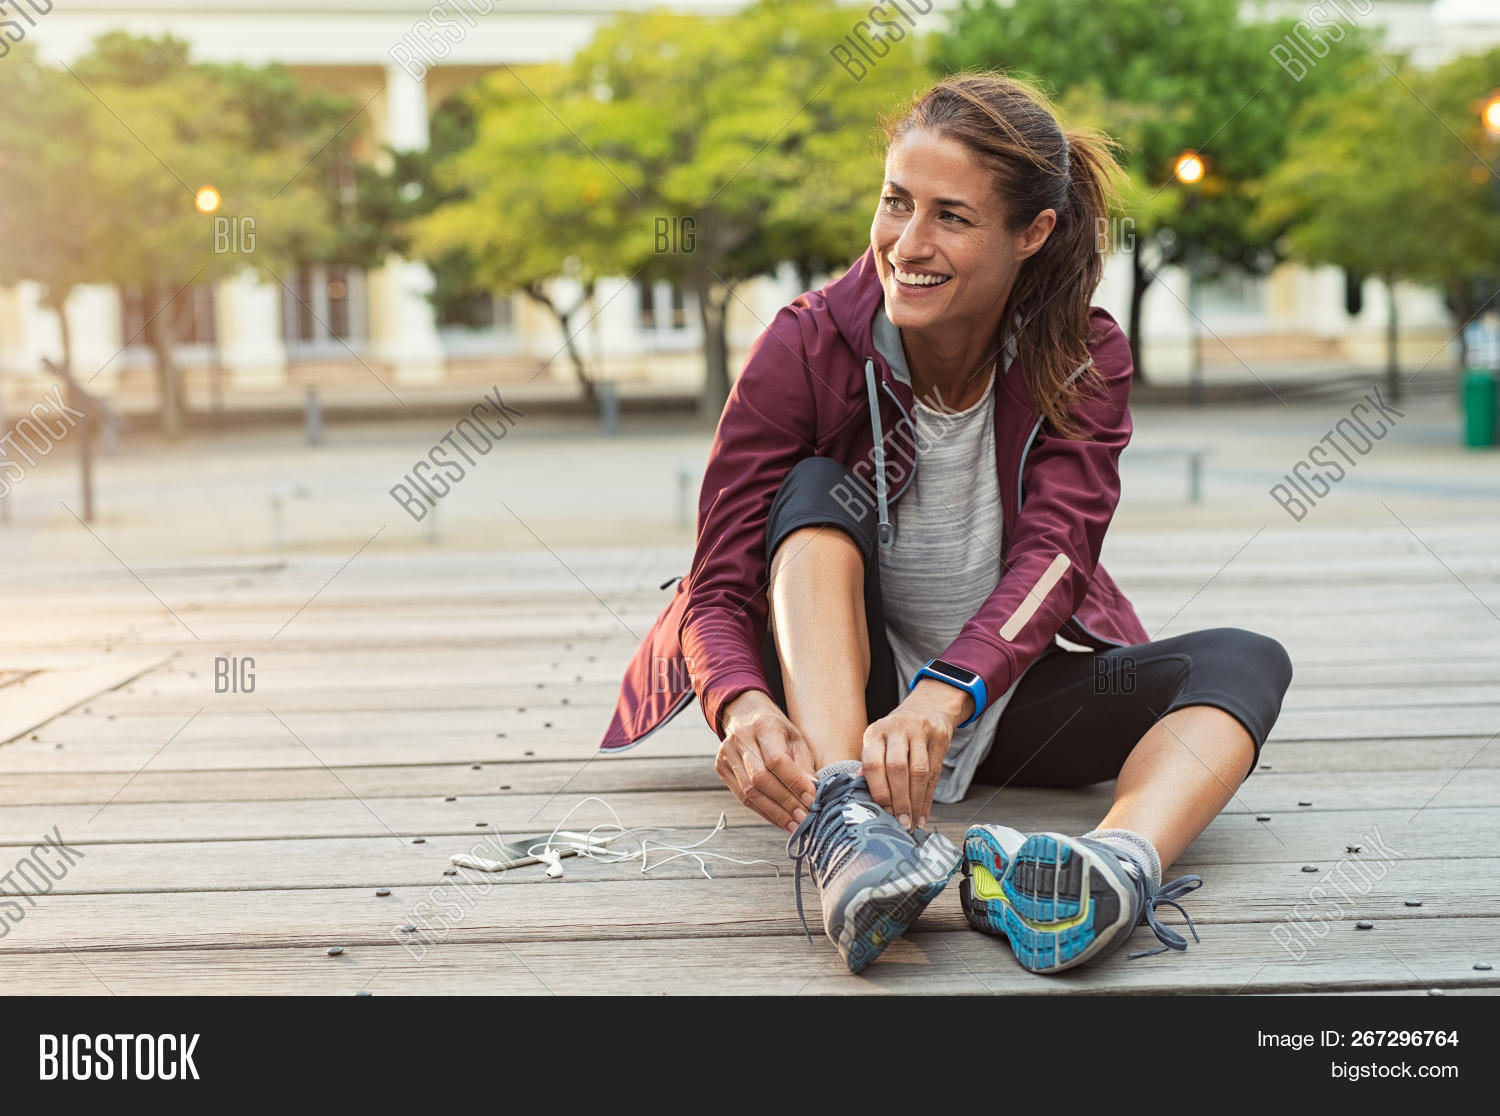 40s,active,athletic,autumn,beautiful,casual,city background,copy space,exercise,fastening,fit,fitness,fitness woman,getting,girl,happy,hispanic,jogger,jogging,lace,latin,looking away,mature,matured,mid adult woman,middle aged woman,outdoor,people,preparing,ready,run,runner,shoe,shoelace,sitting,smiling,sneaker,sport,sporty,sporty woman,spring,street,tie,tie shoe laces,tie shoelaces,training,urban,winter,workout